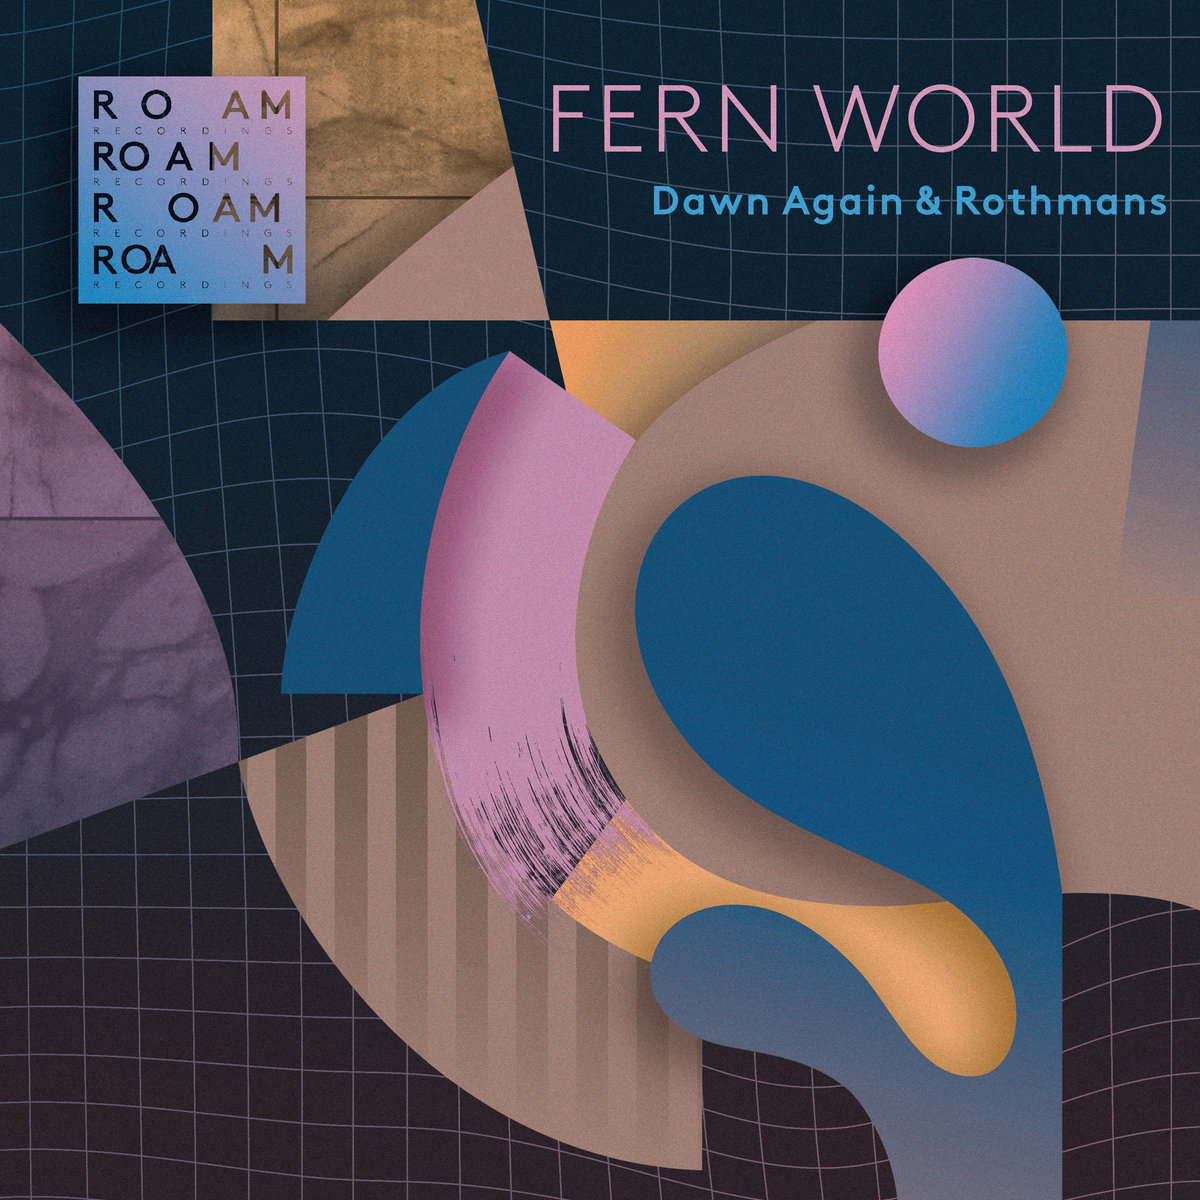 fern world - rothmans & dawn again